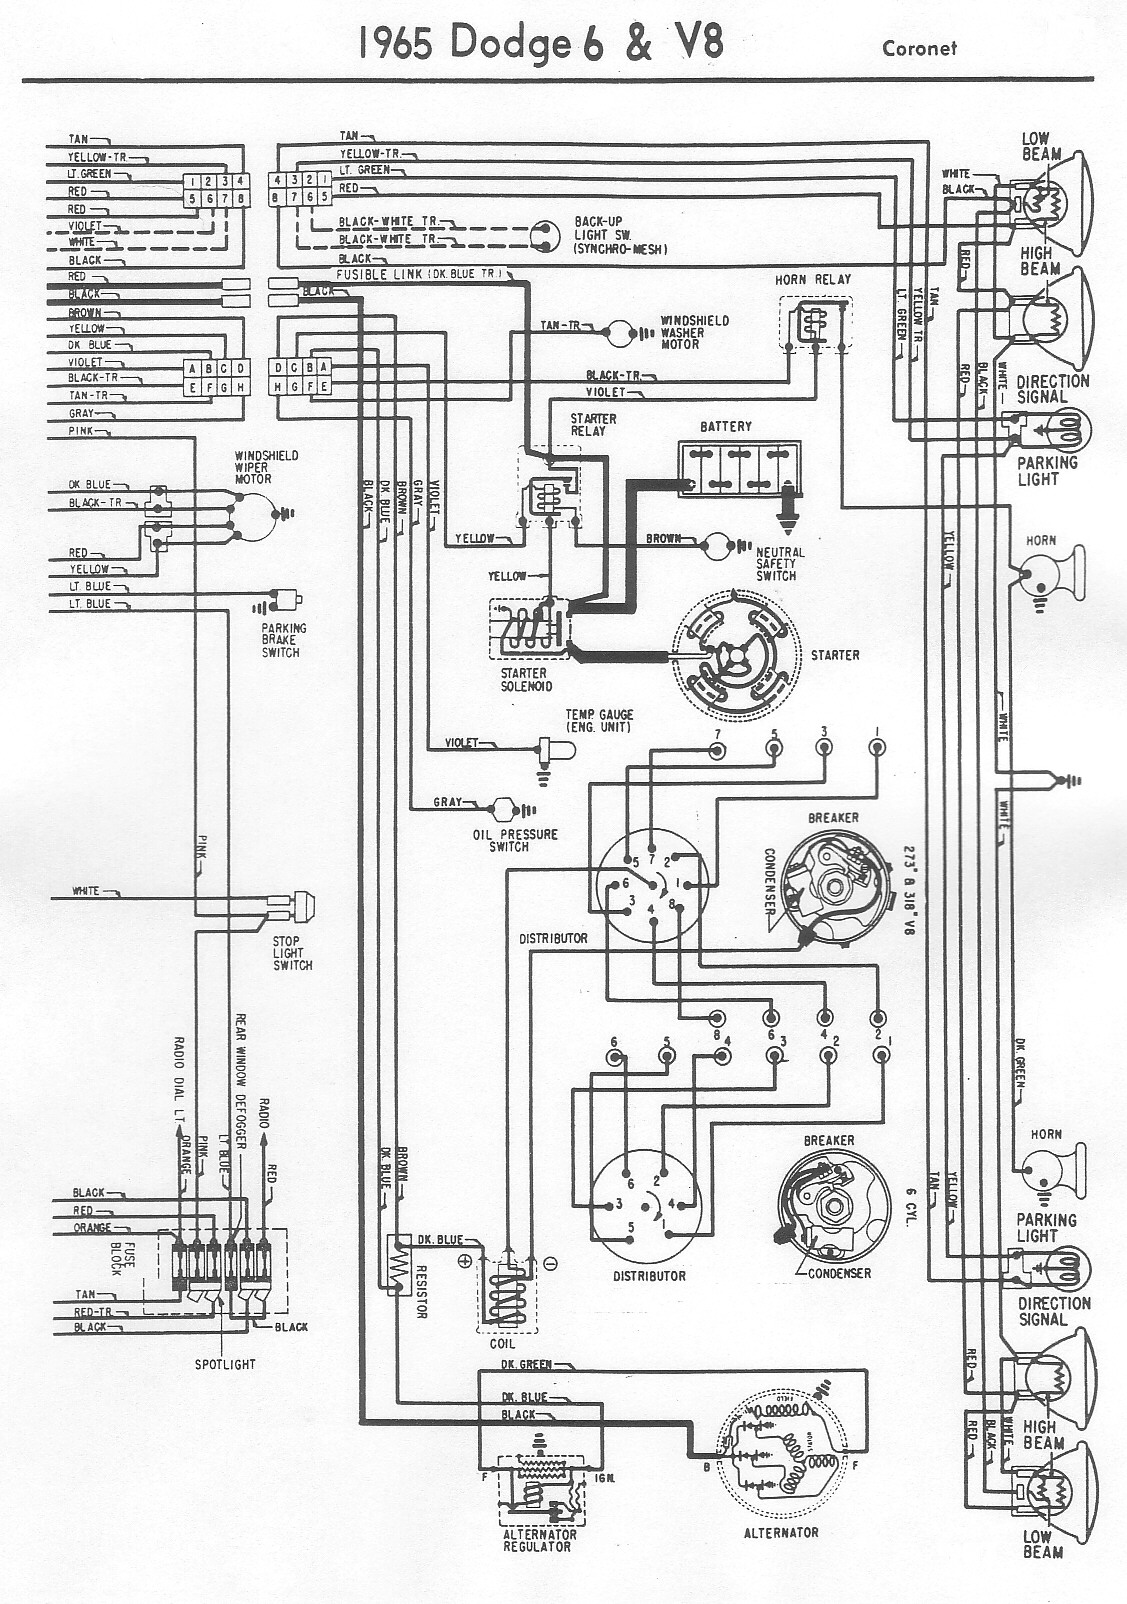 1970 dodge coronet wiringdiagram wedocable